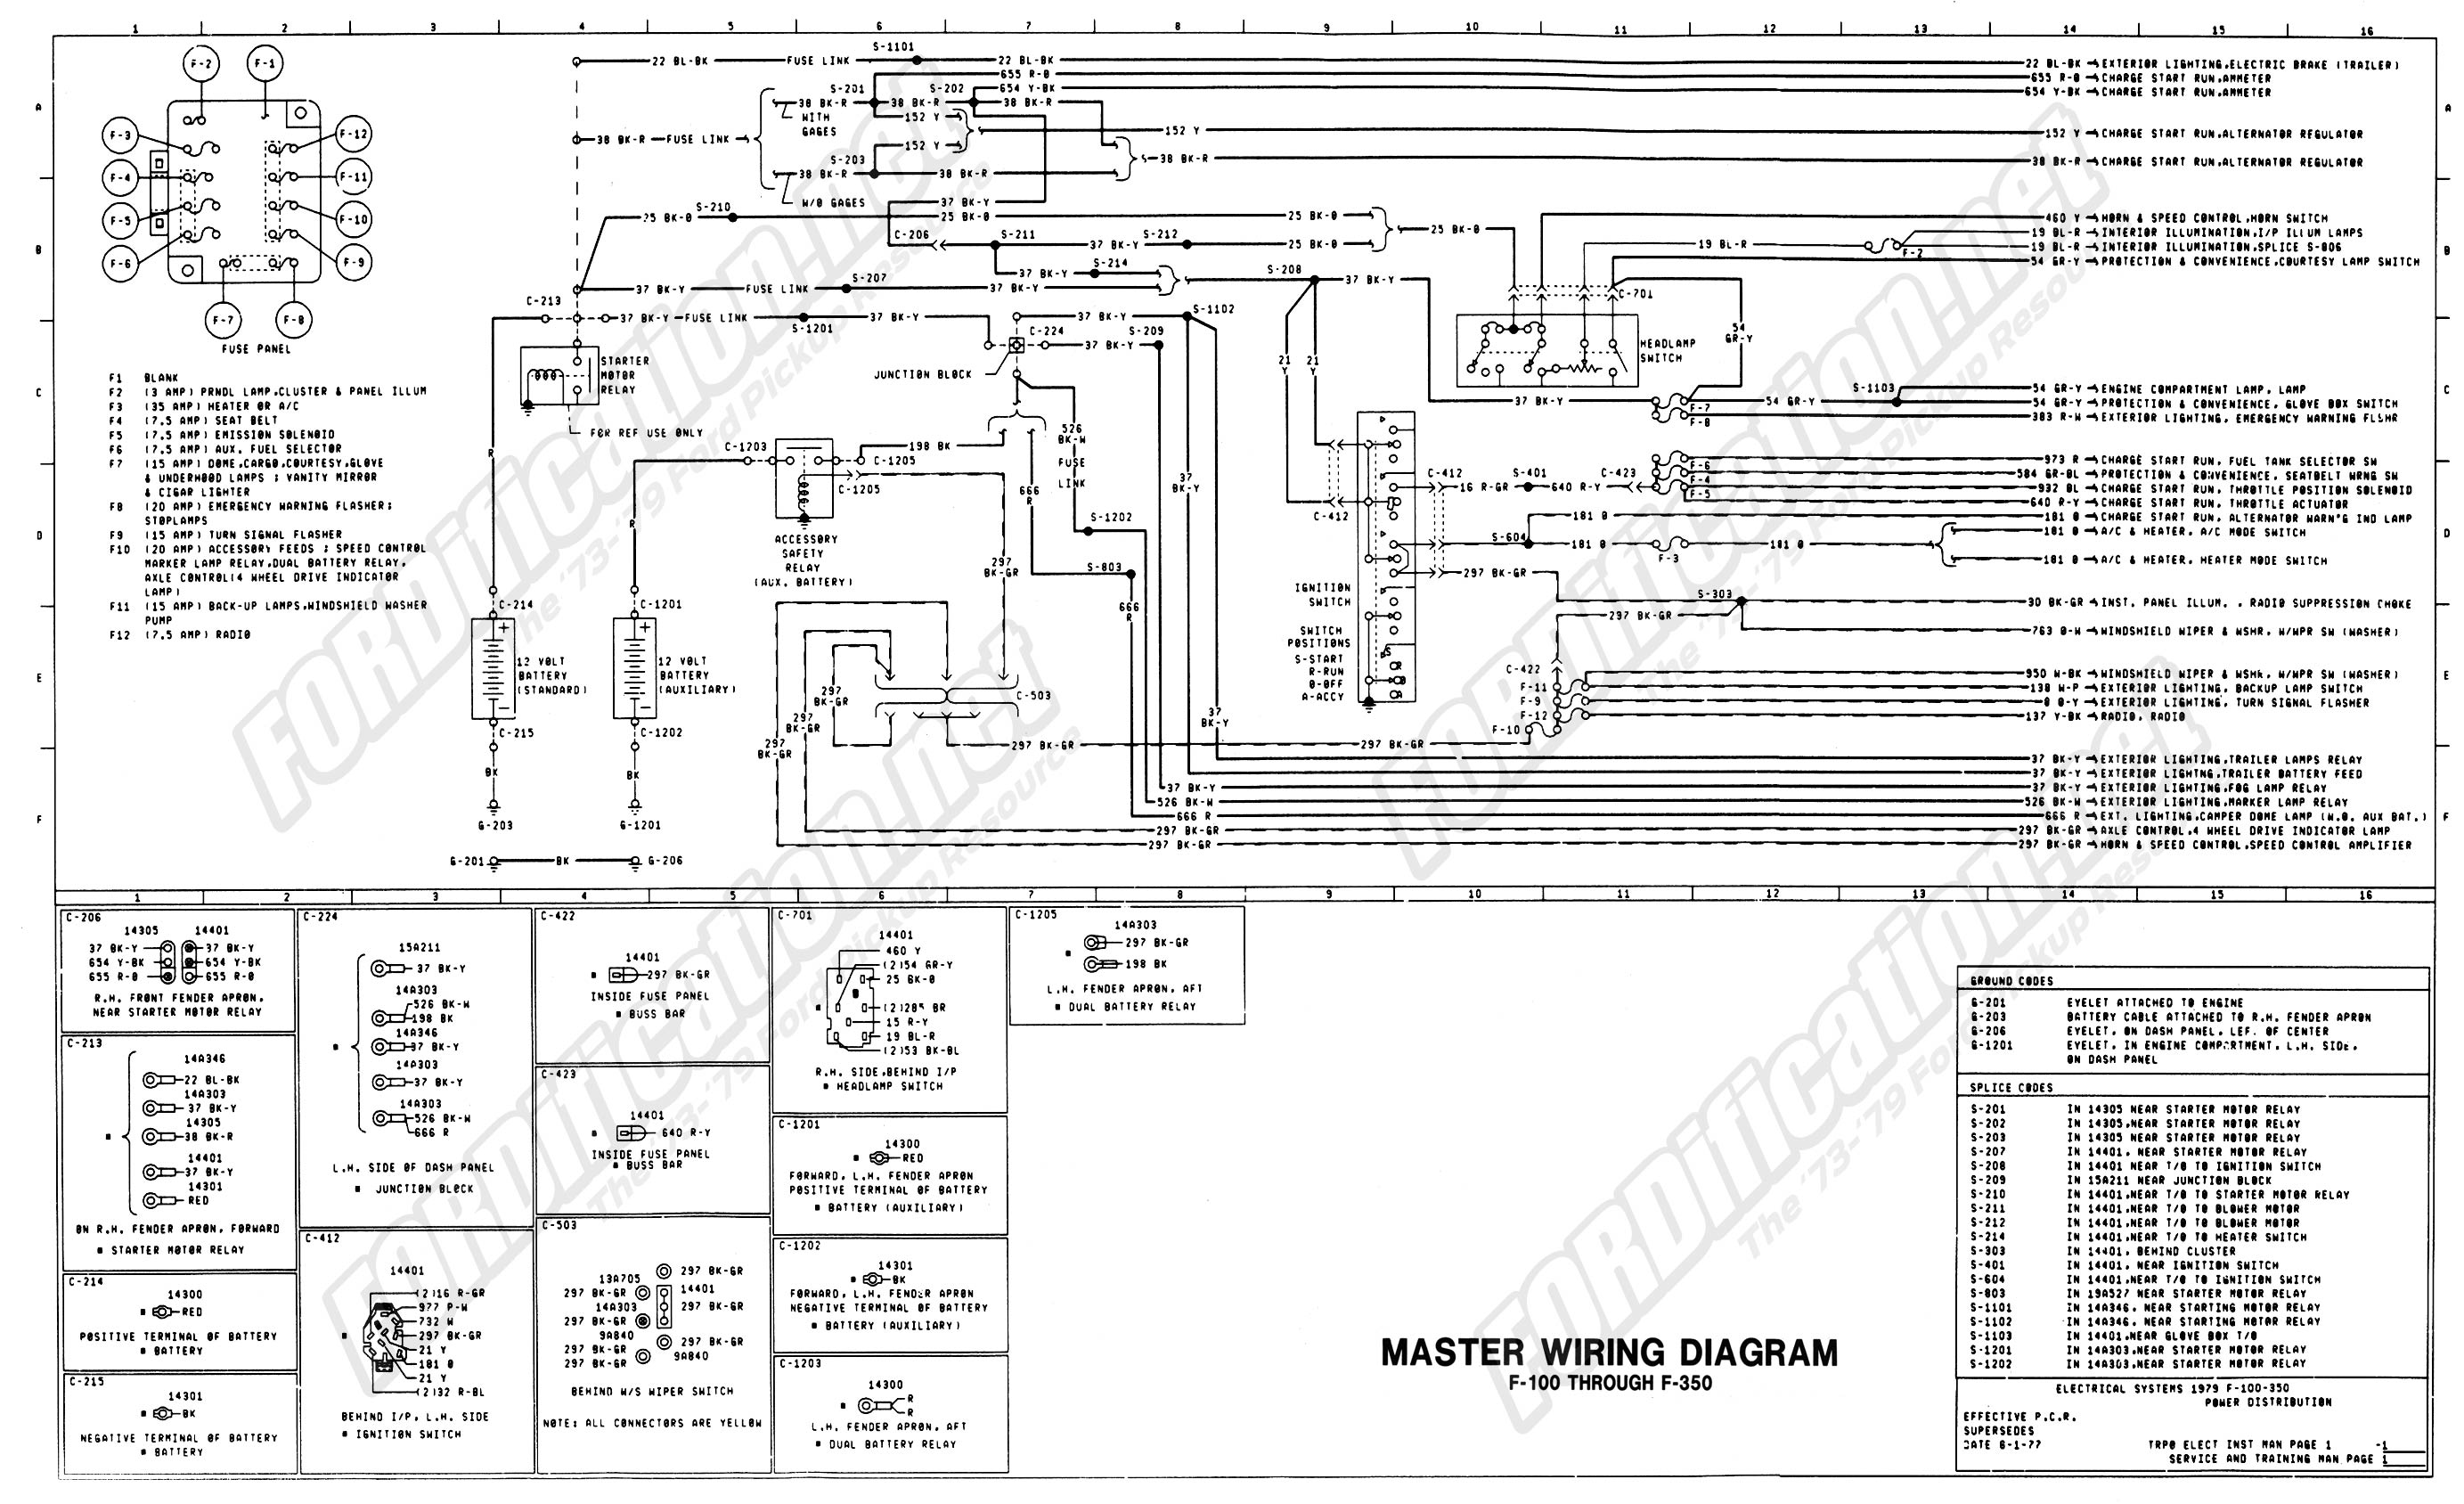 1973-1979 ford truck wiring diagrams & schematics ... 1976 ford f350 wiring diagram